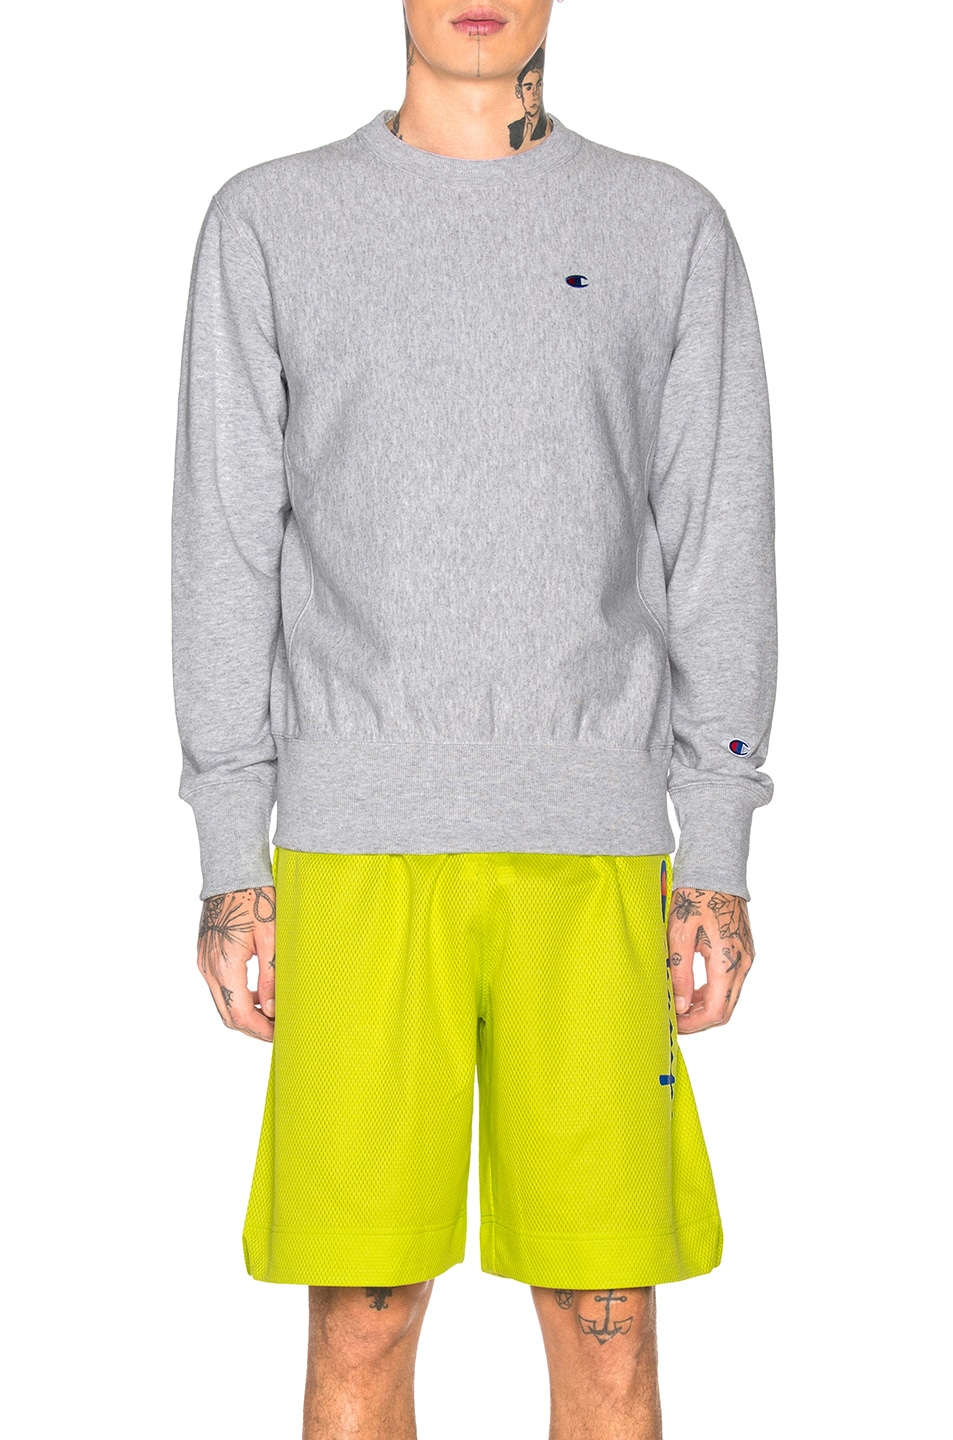 Image 1 of Champion Reverse Weave Champion Crewneck Sweatshirt in Grey